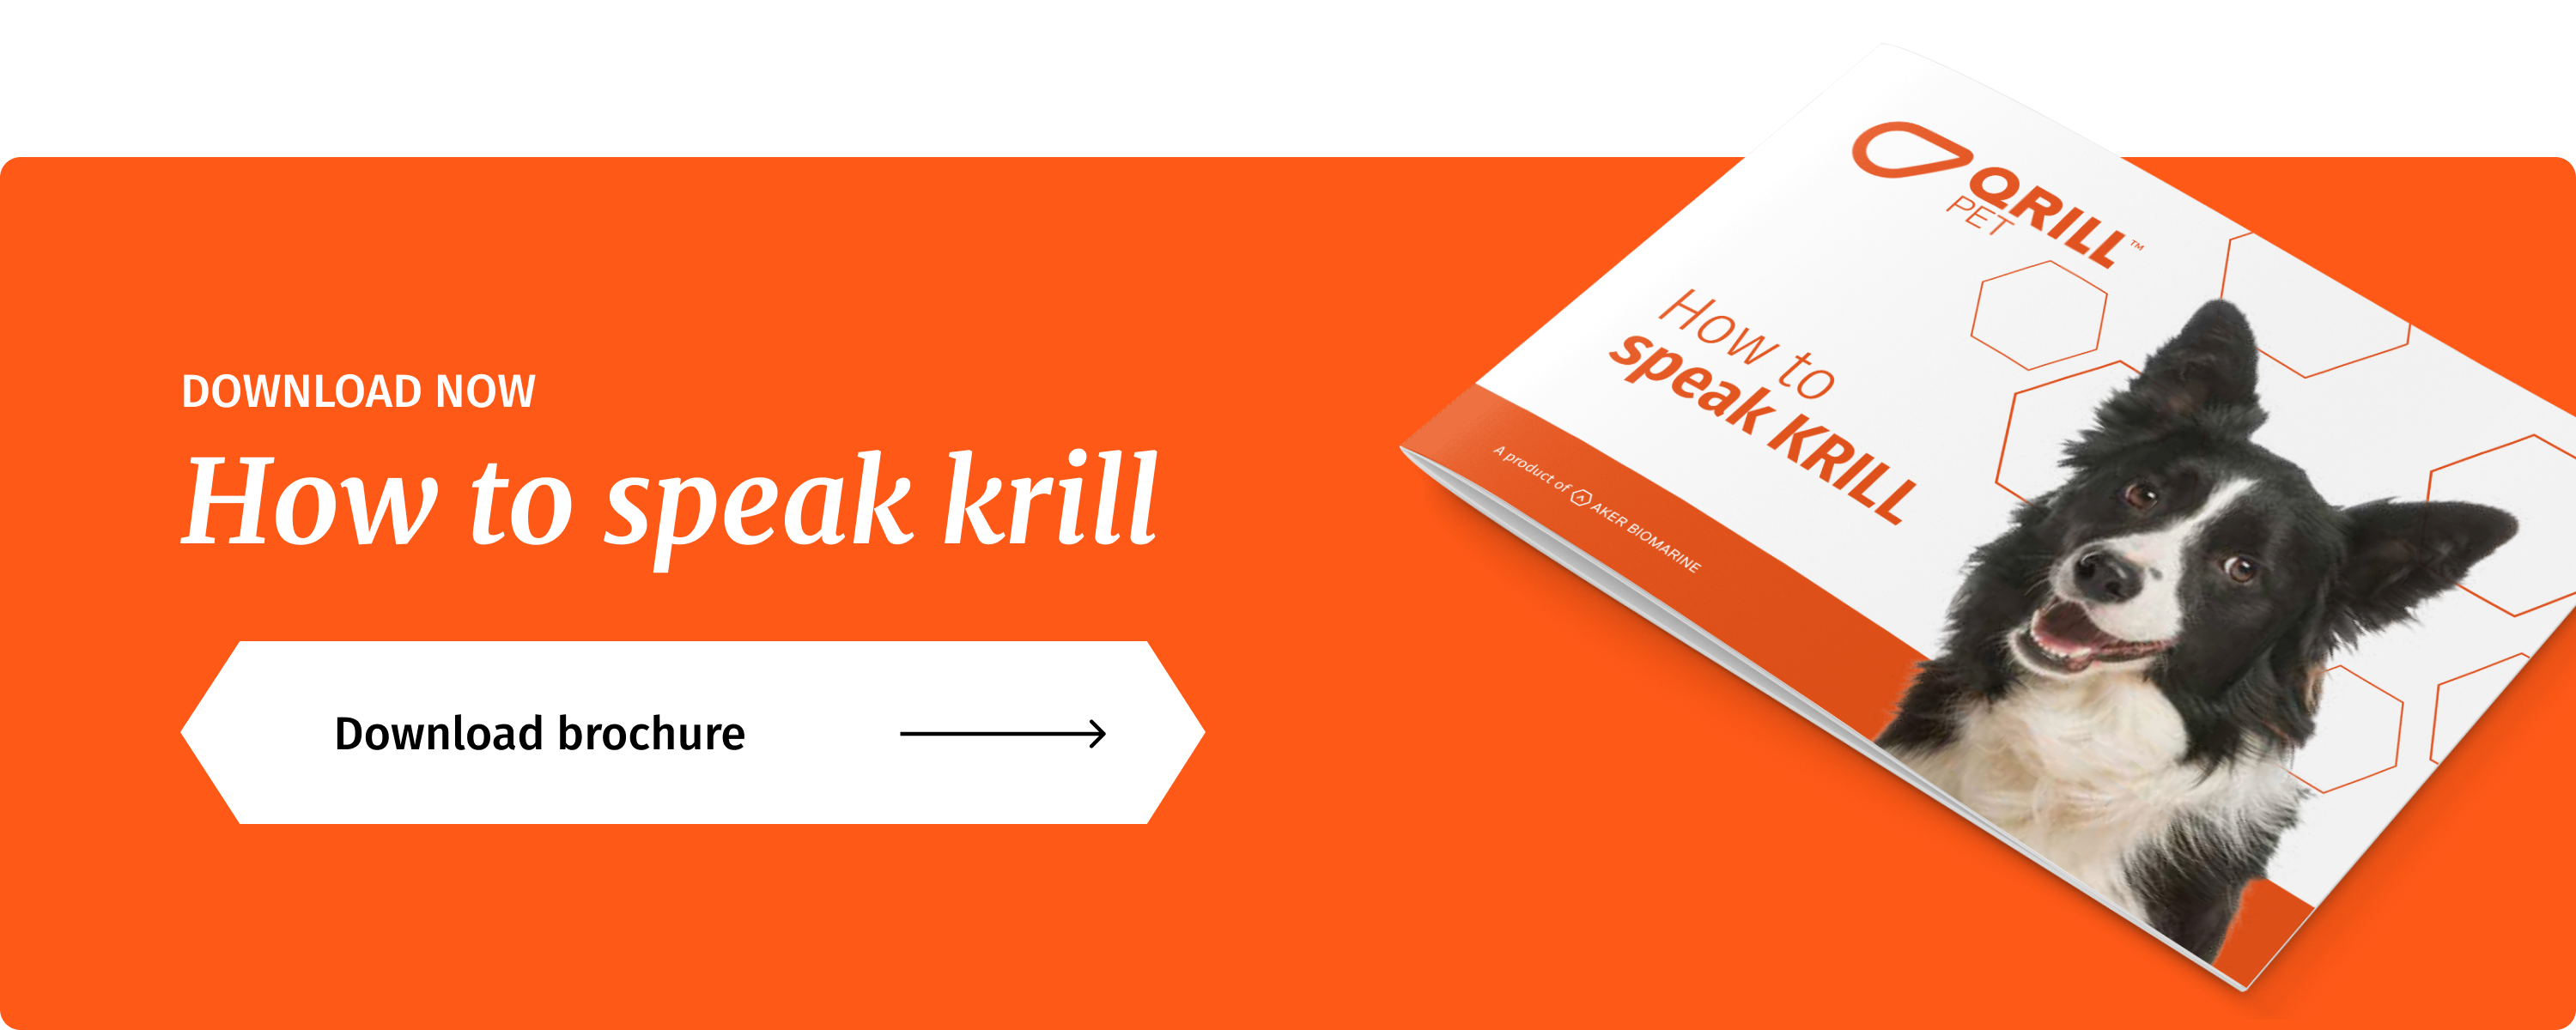 How to speak KRILL Brochure CTA